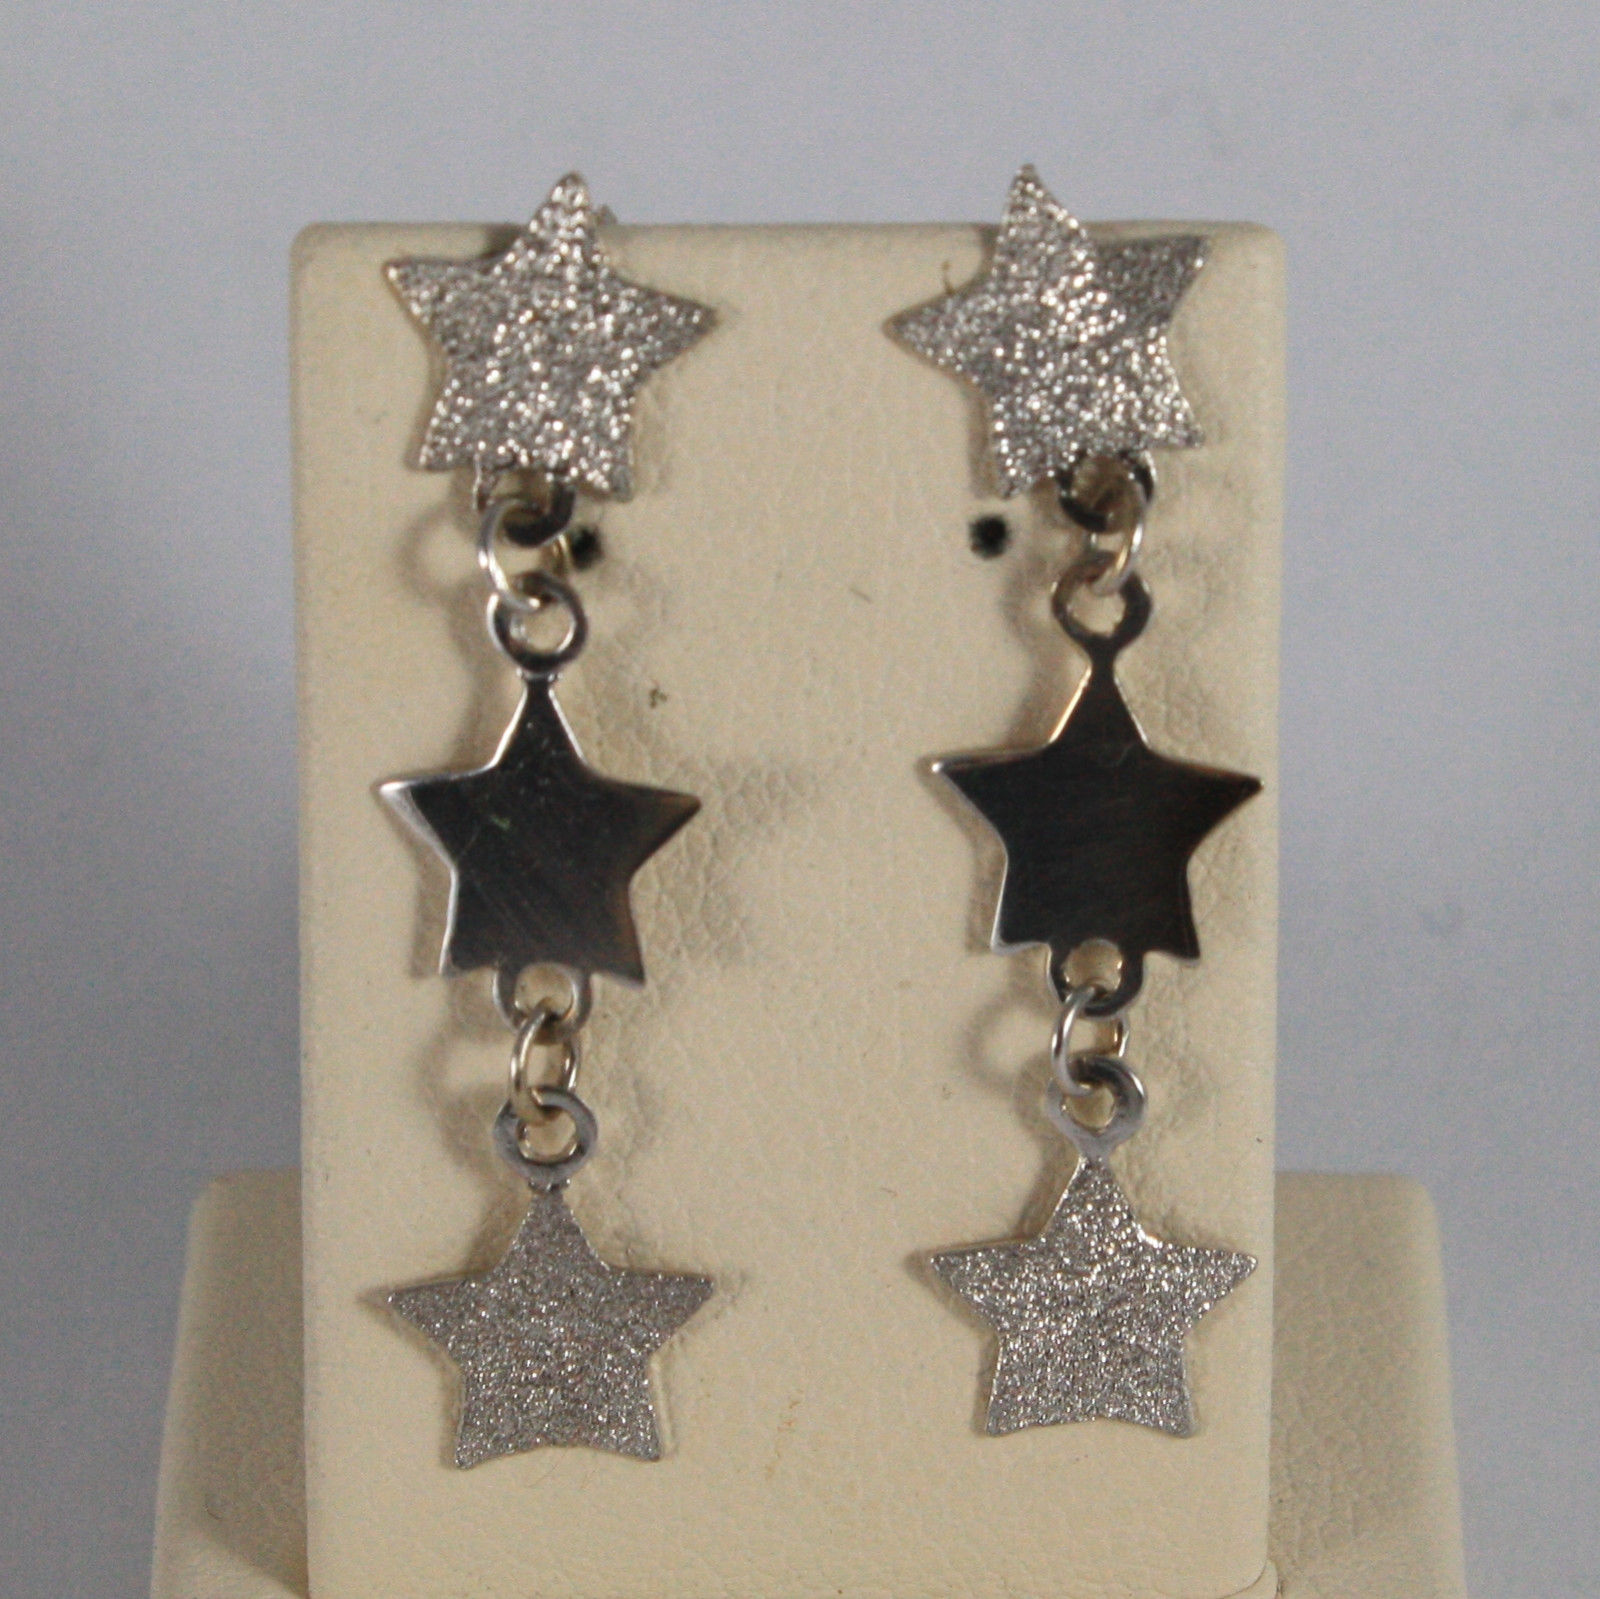 SOLID 18K WHITE GOLD EARRINGS, WITH POLISHED AND SATIN STARS, MADE IN ITALY